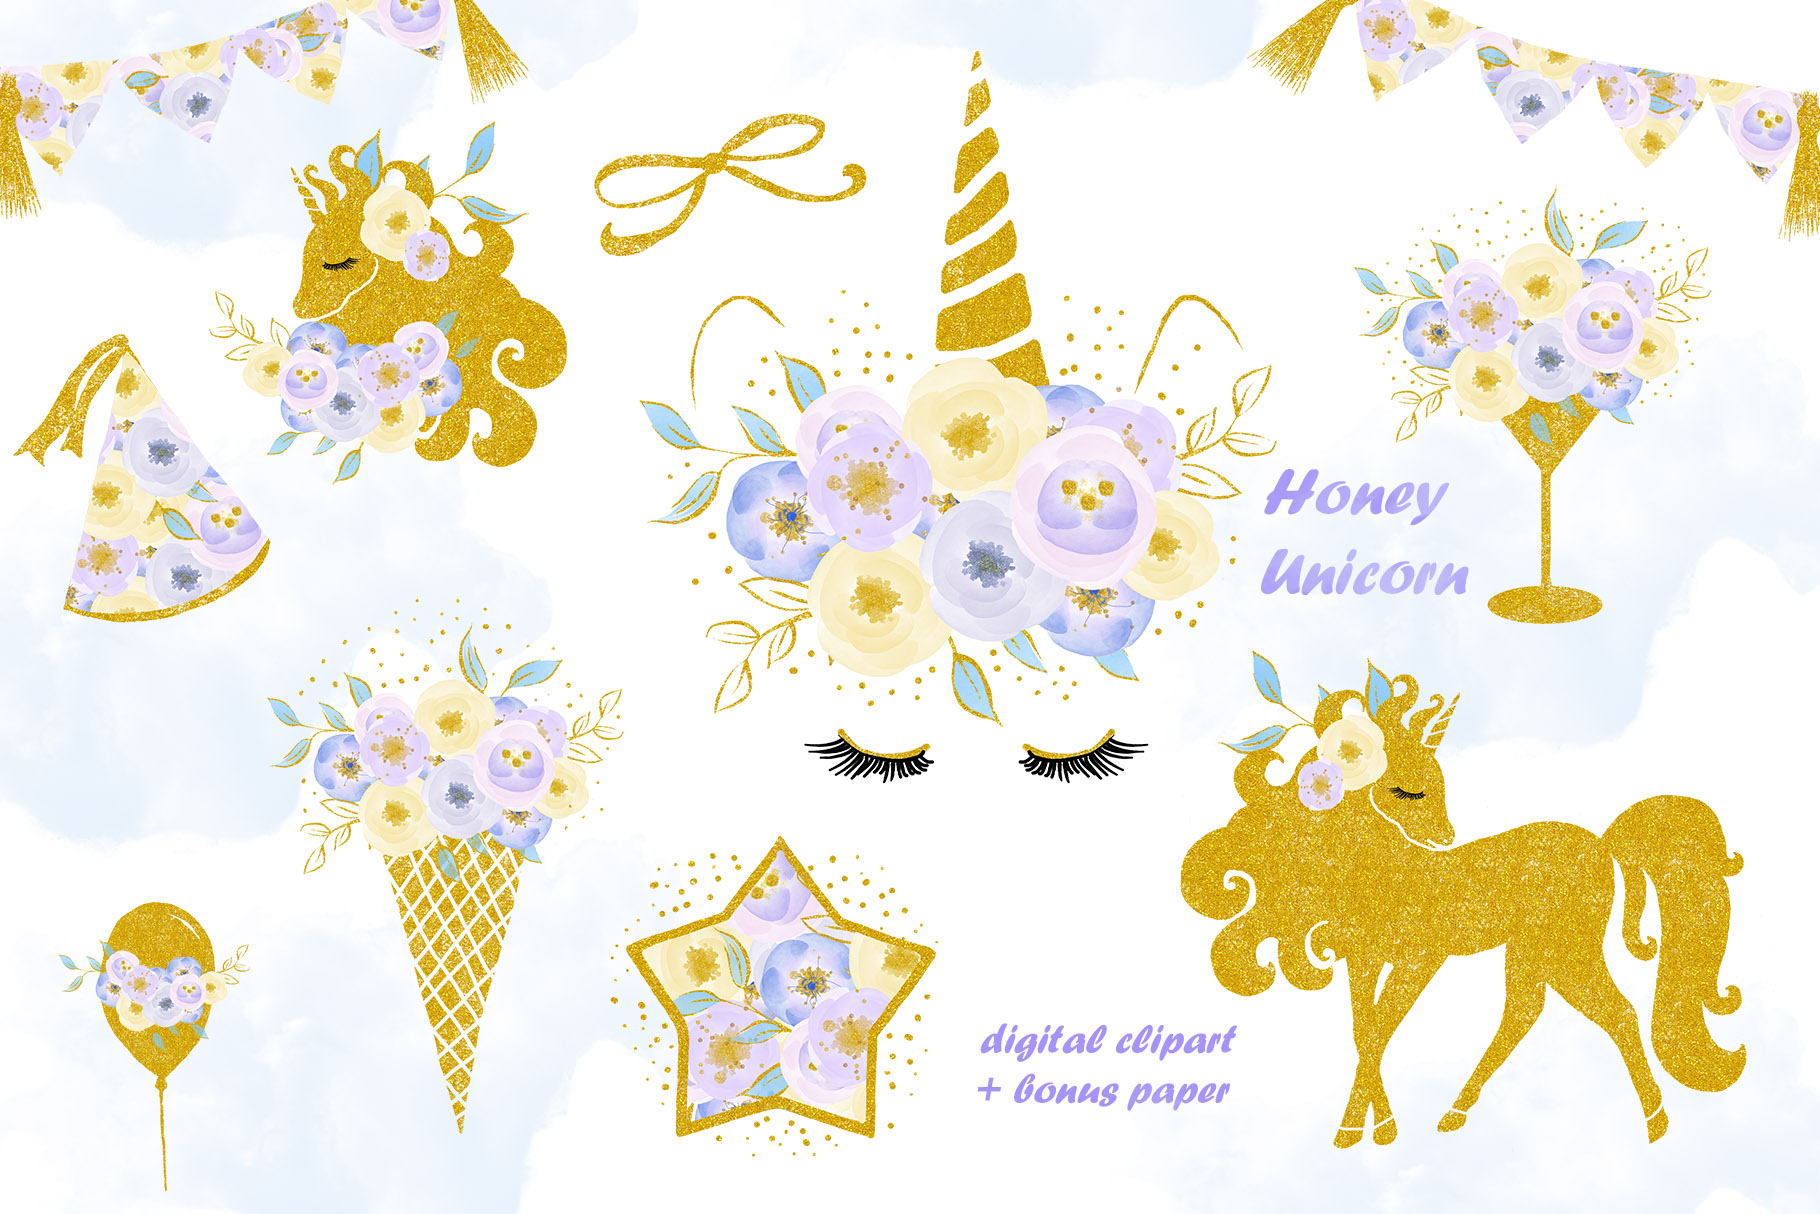 Unicorn clip art, flowers with gold example image 1